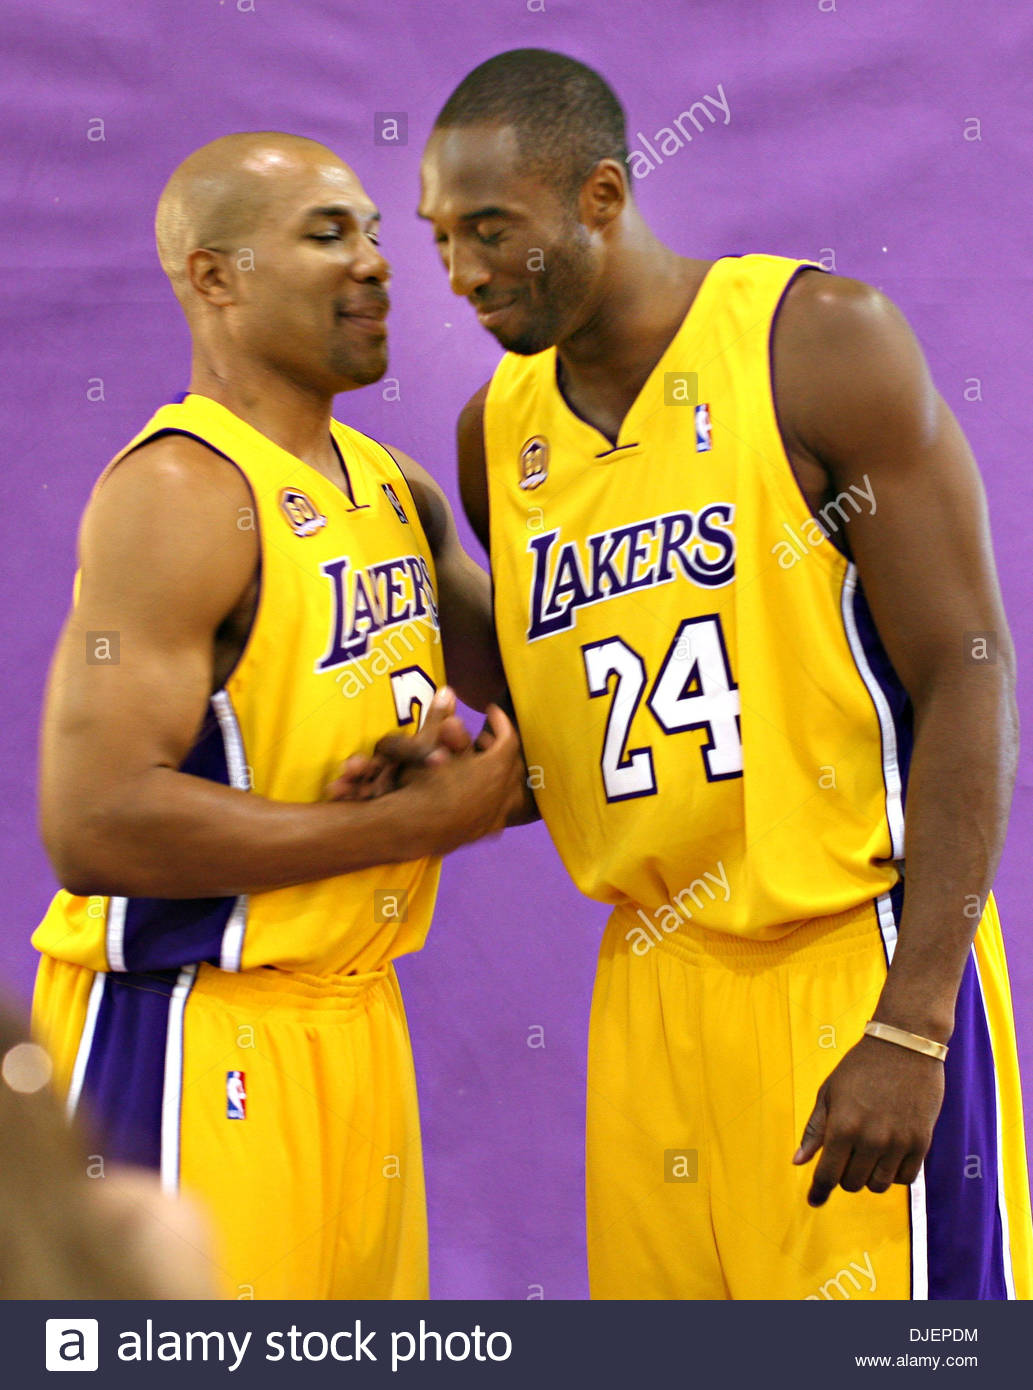 85cc9d8732e LAKERS MEDIA DAY--Derek Fisher and Kobe Bryant pose for a photo at the